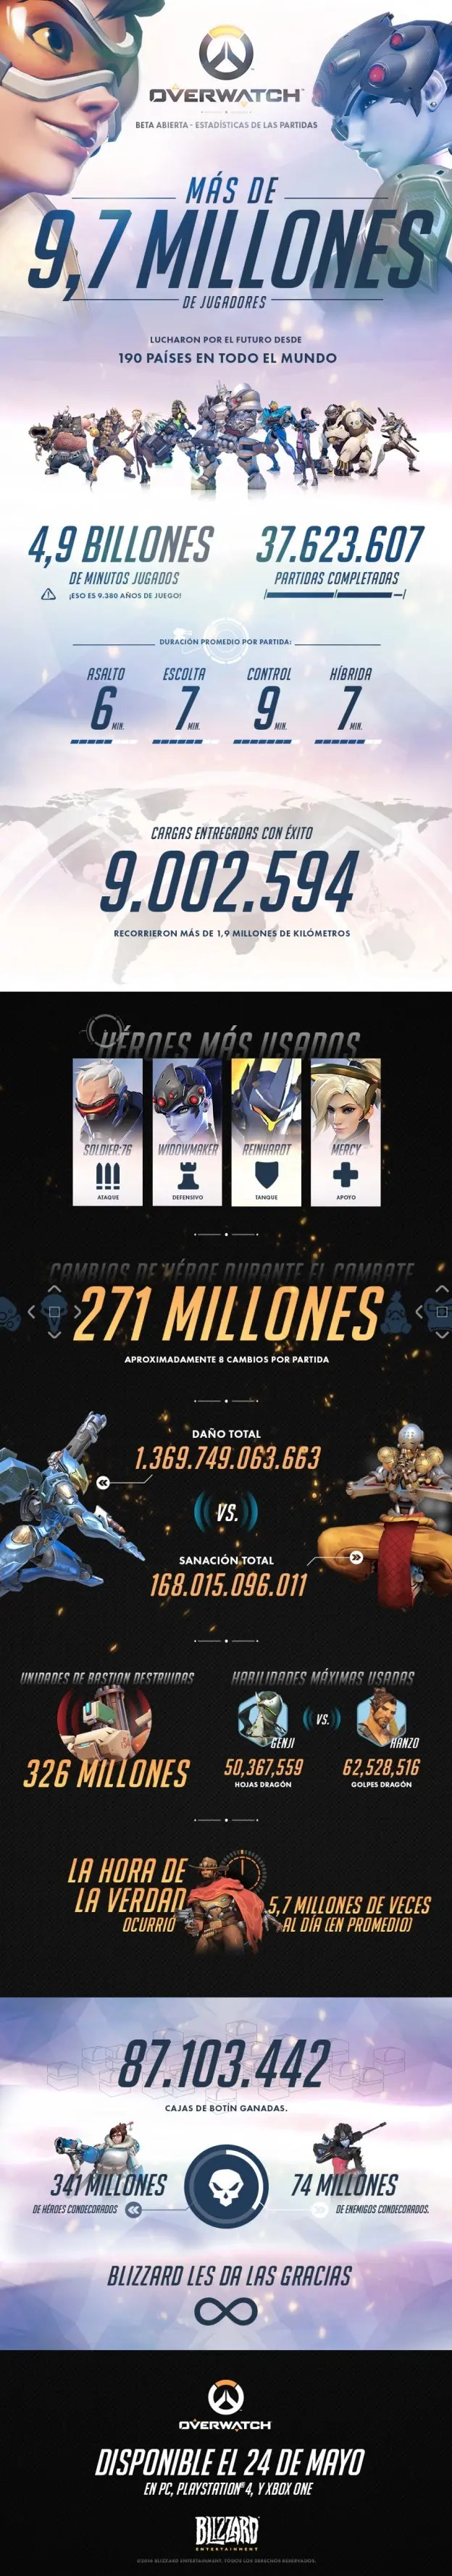 estadísticas overwatch